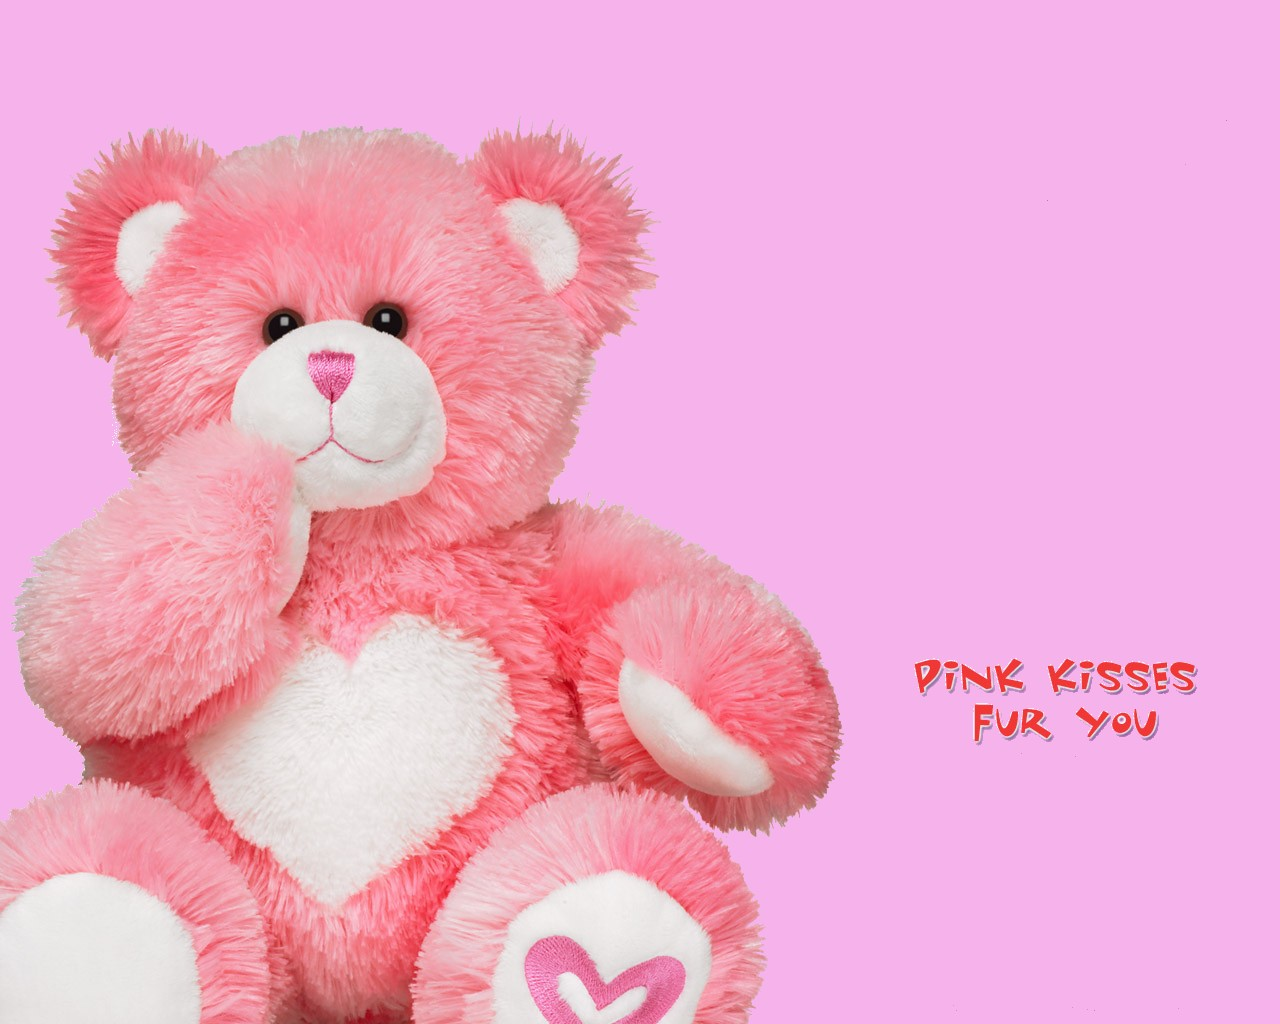 Pinky Teddy Bear Wallpaper Image